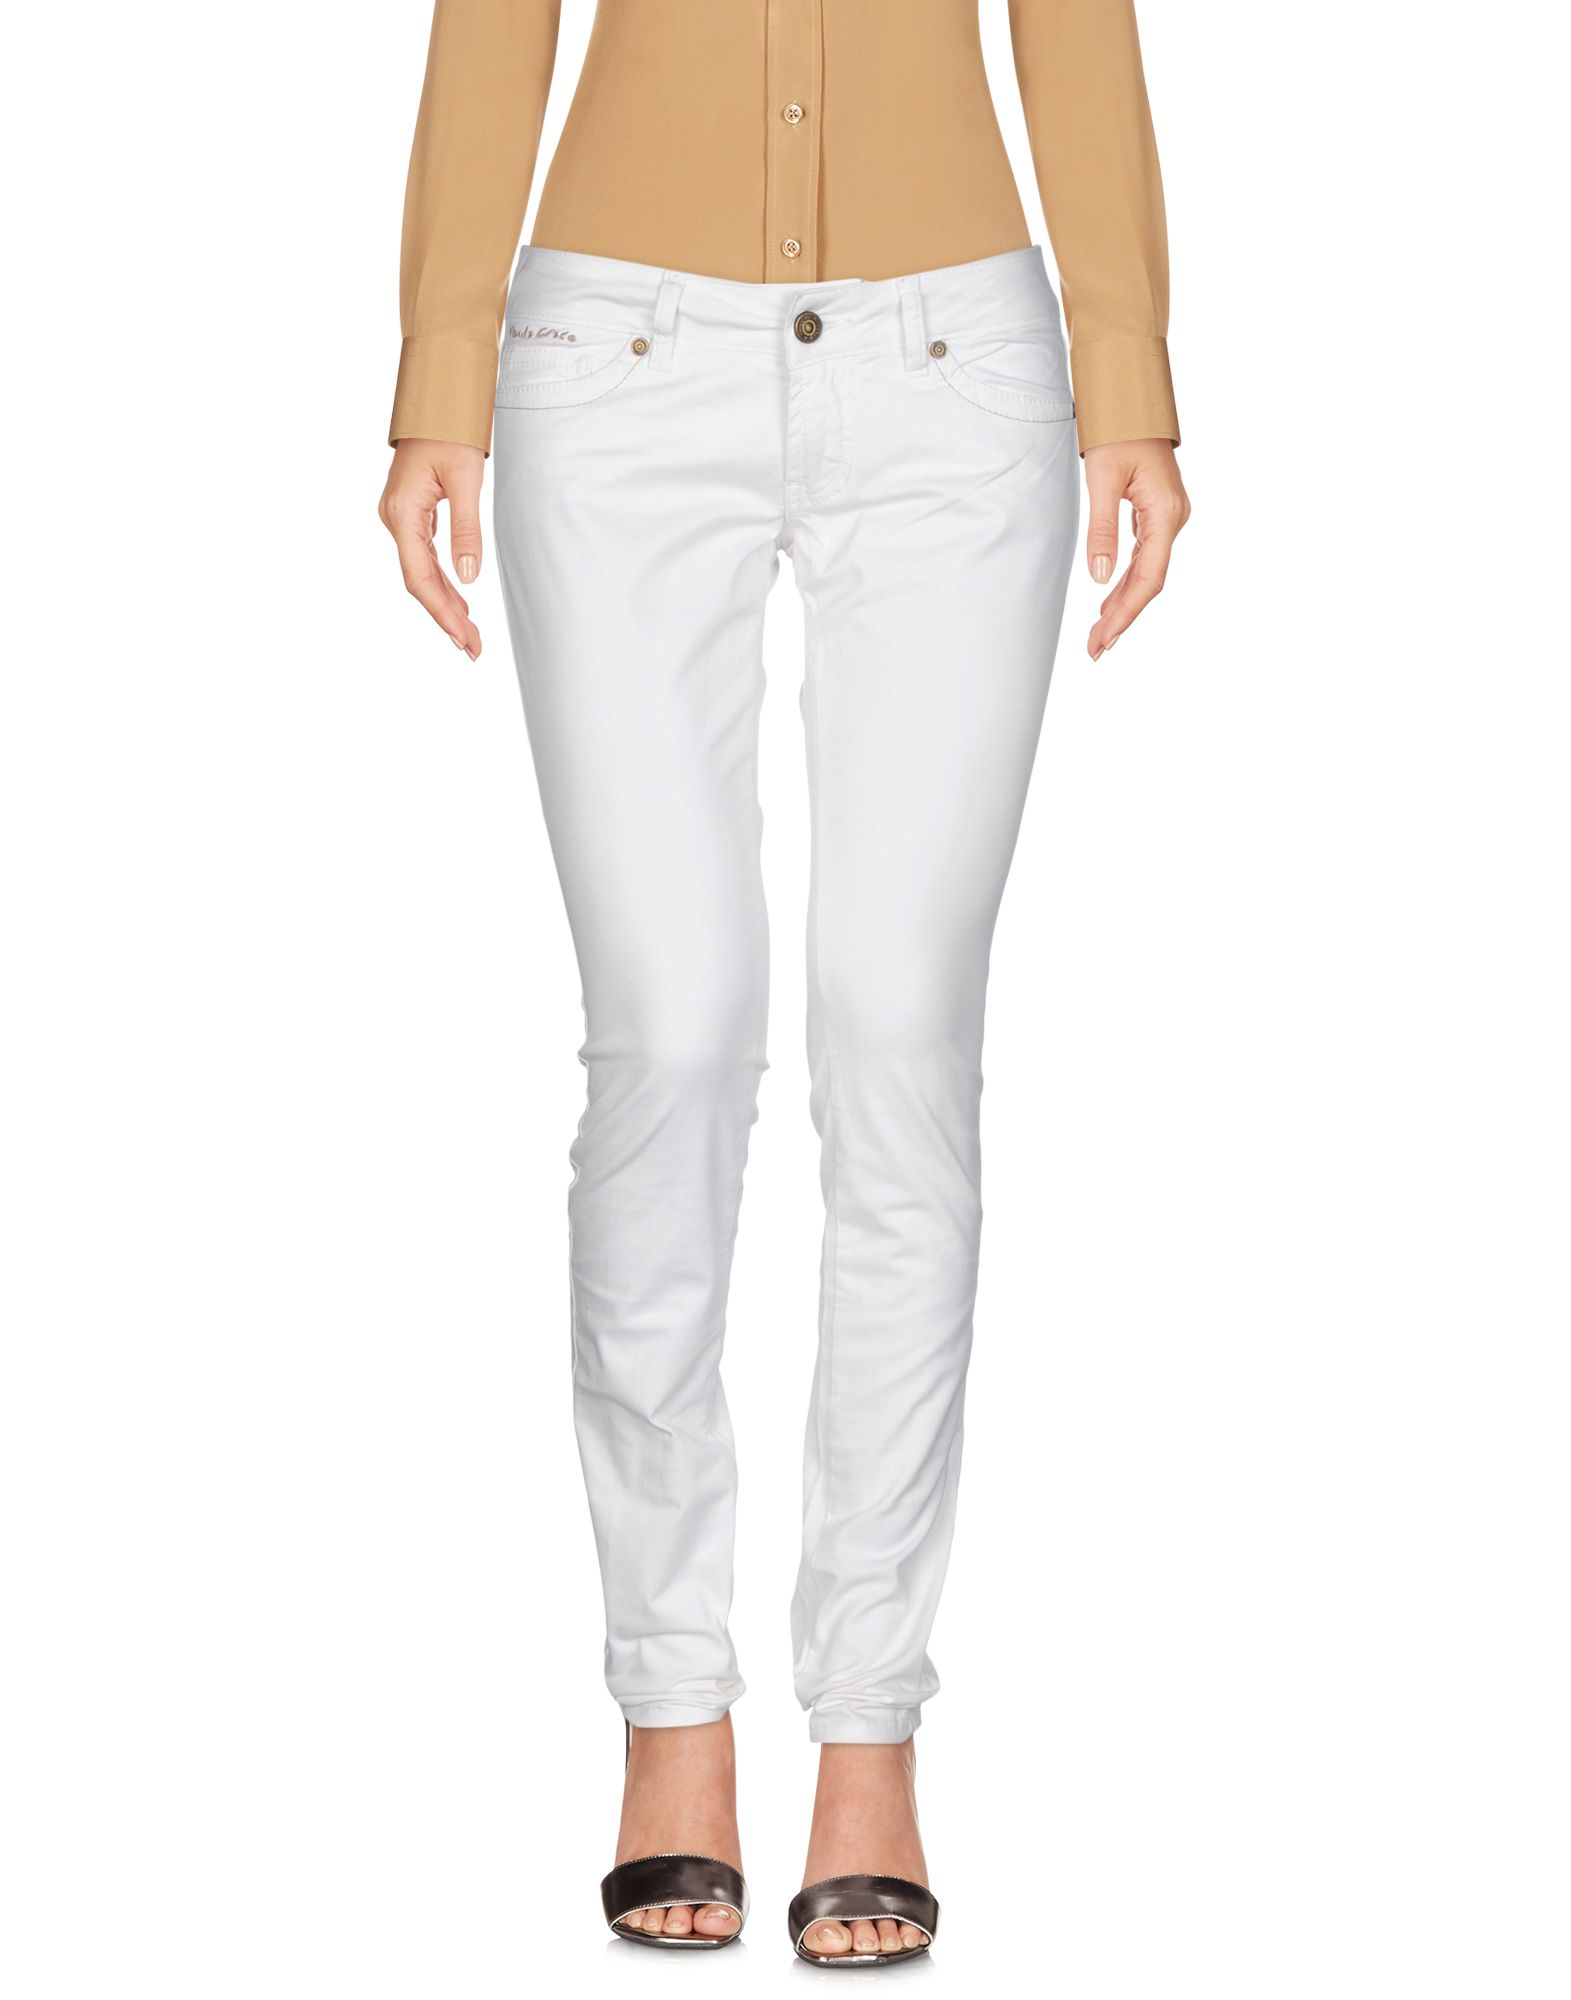 MANILA GRACE Casual Pants in White